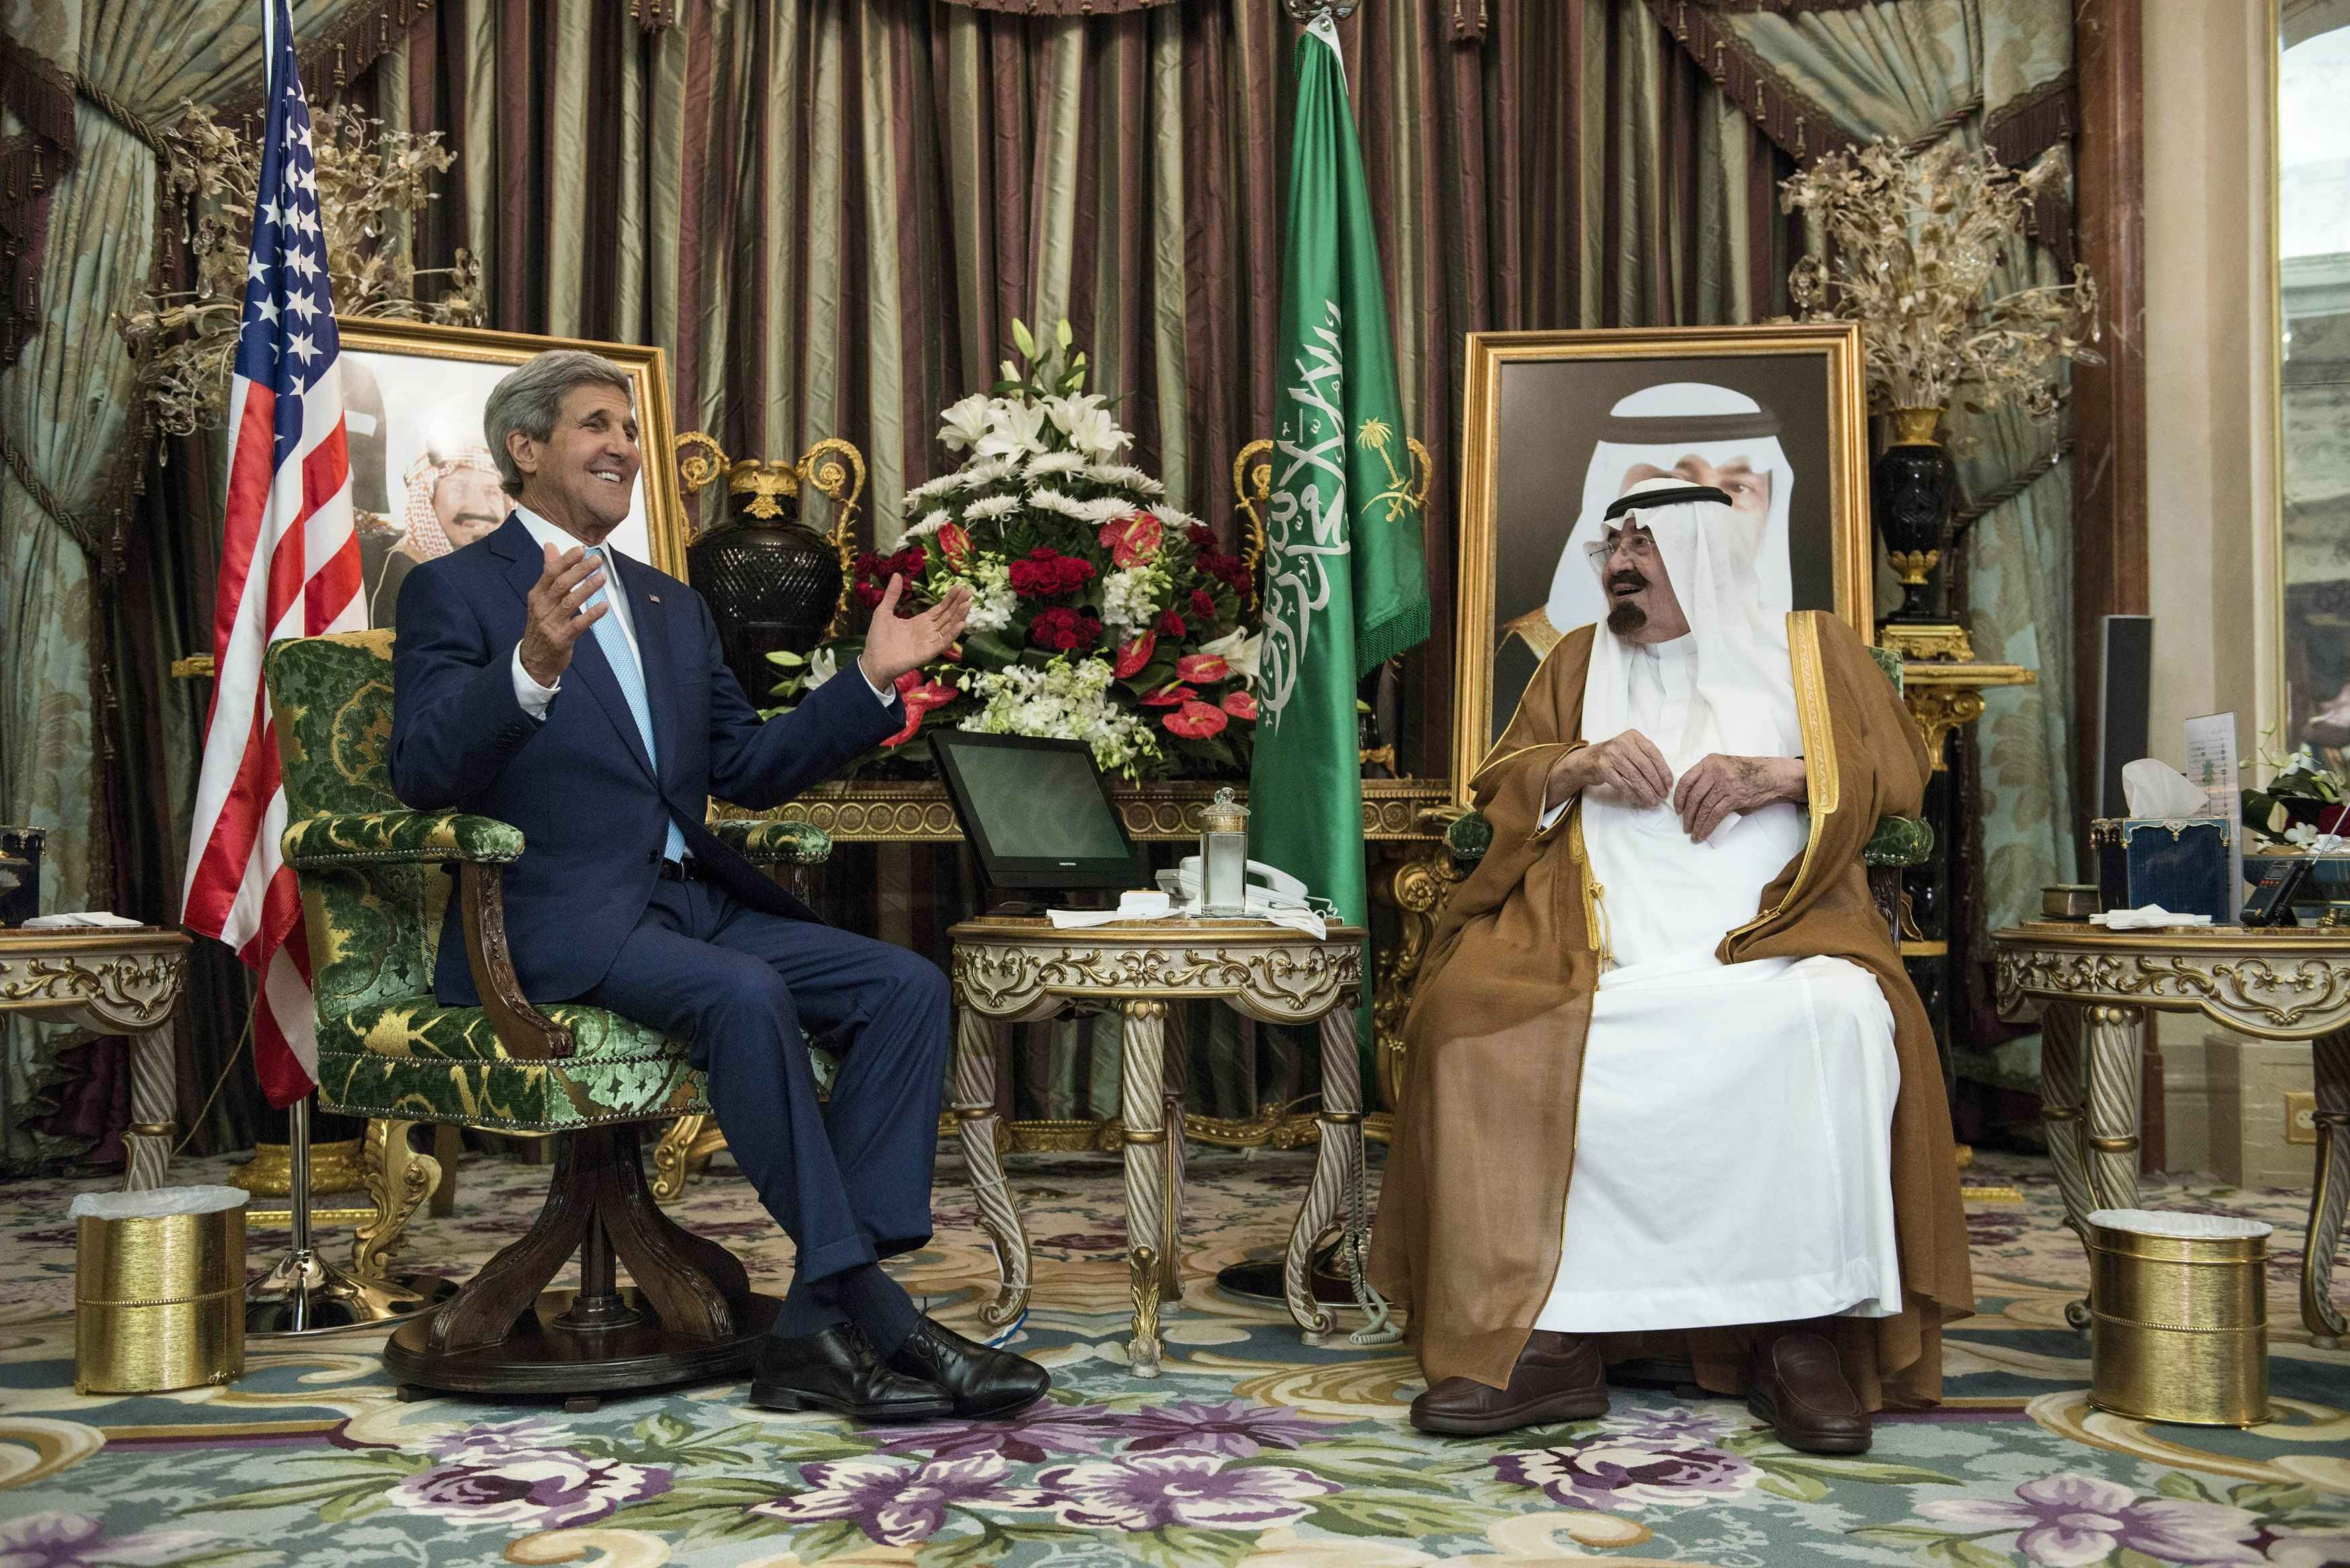 Saudi King Abdullah listens to U.S. Secretary of State John Kerry before a meeting at the royal palace in Jeddah, Saudi Arabia,  on Sept. 11, 2014